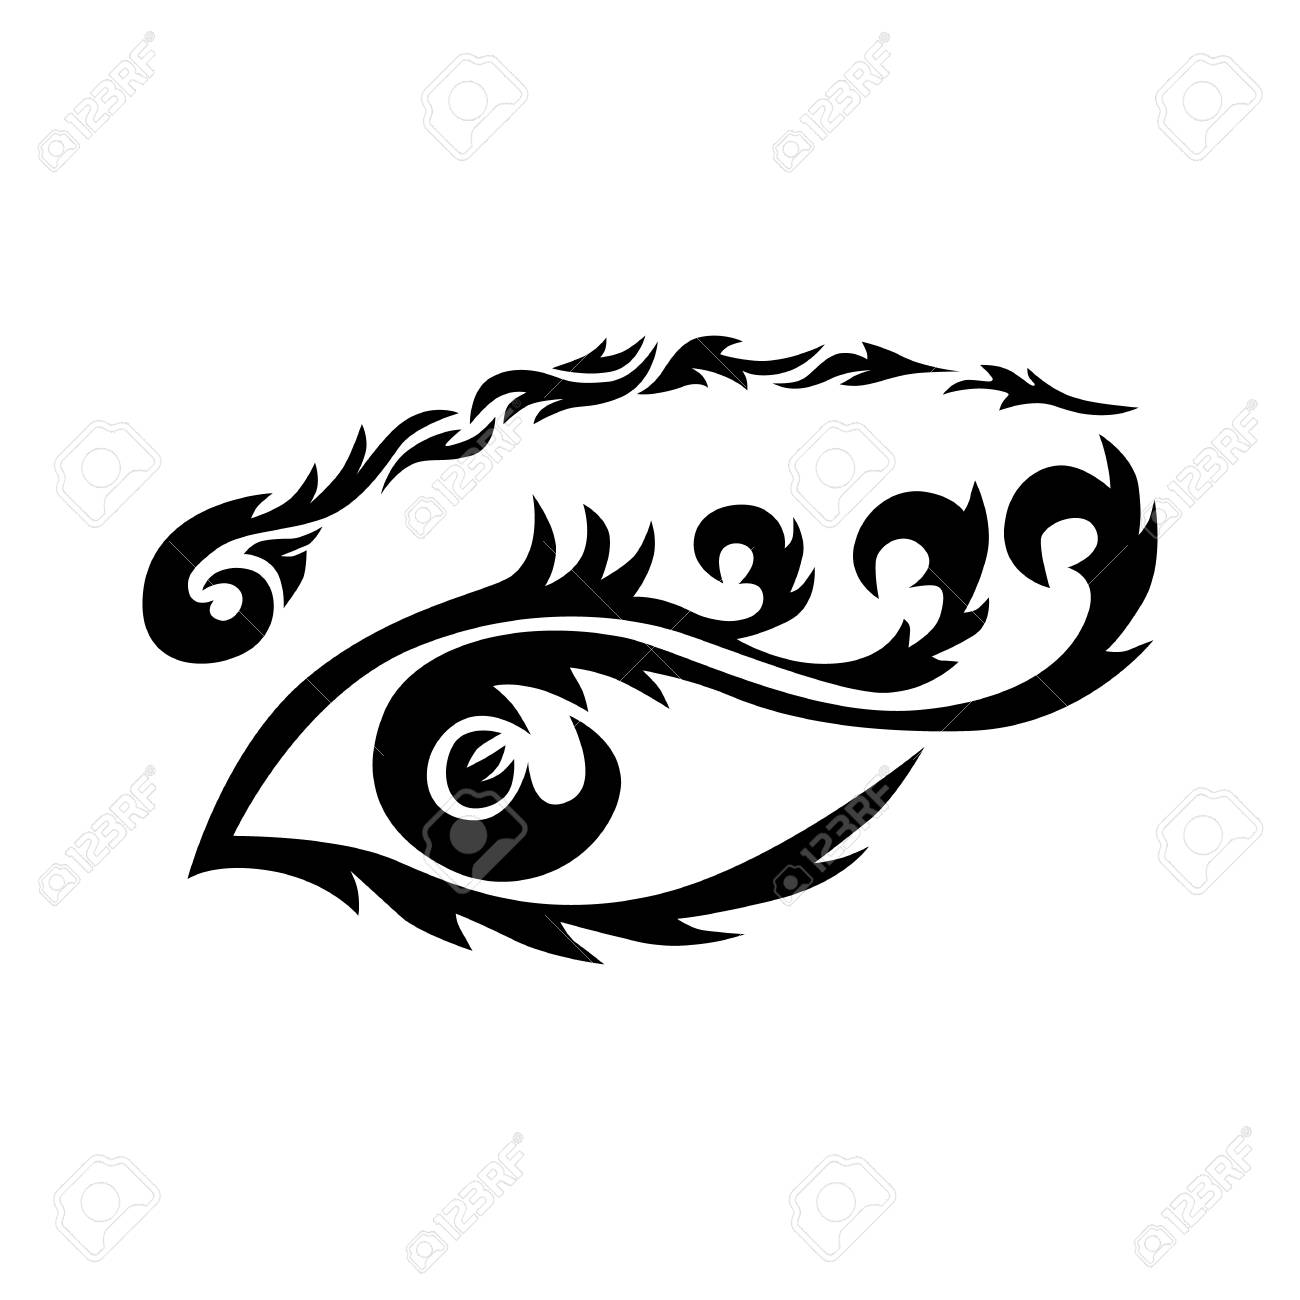 Eye Tattoo Maori Tribal Tattoo In Polynesian Style Celtic Ornament